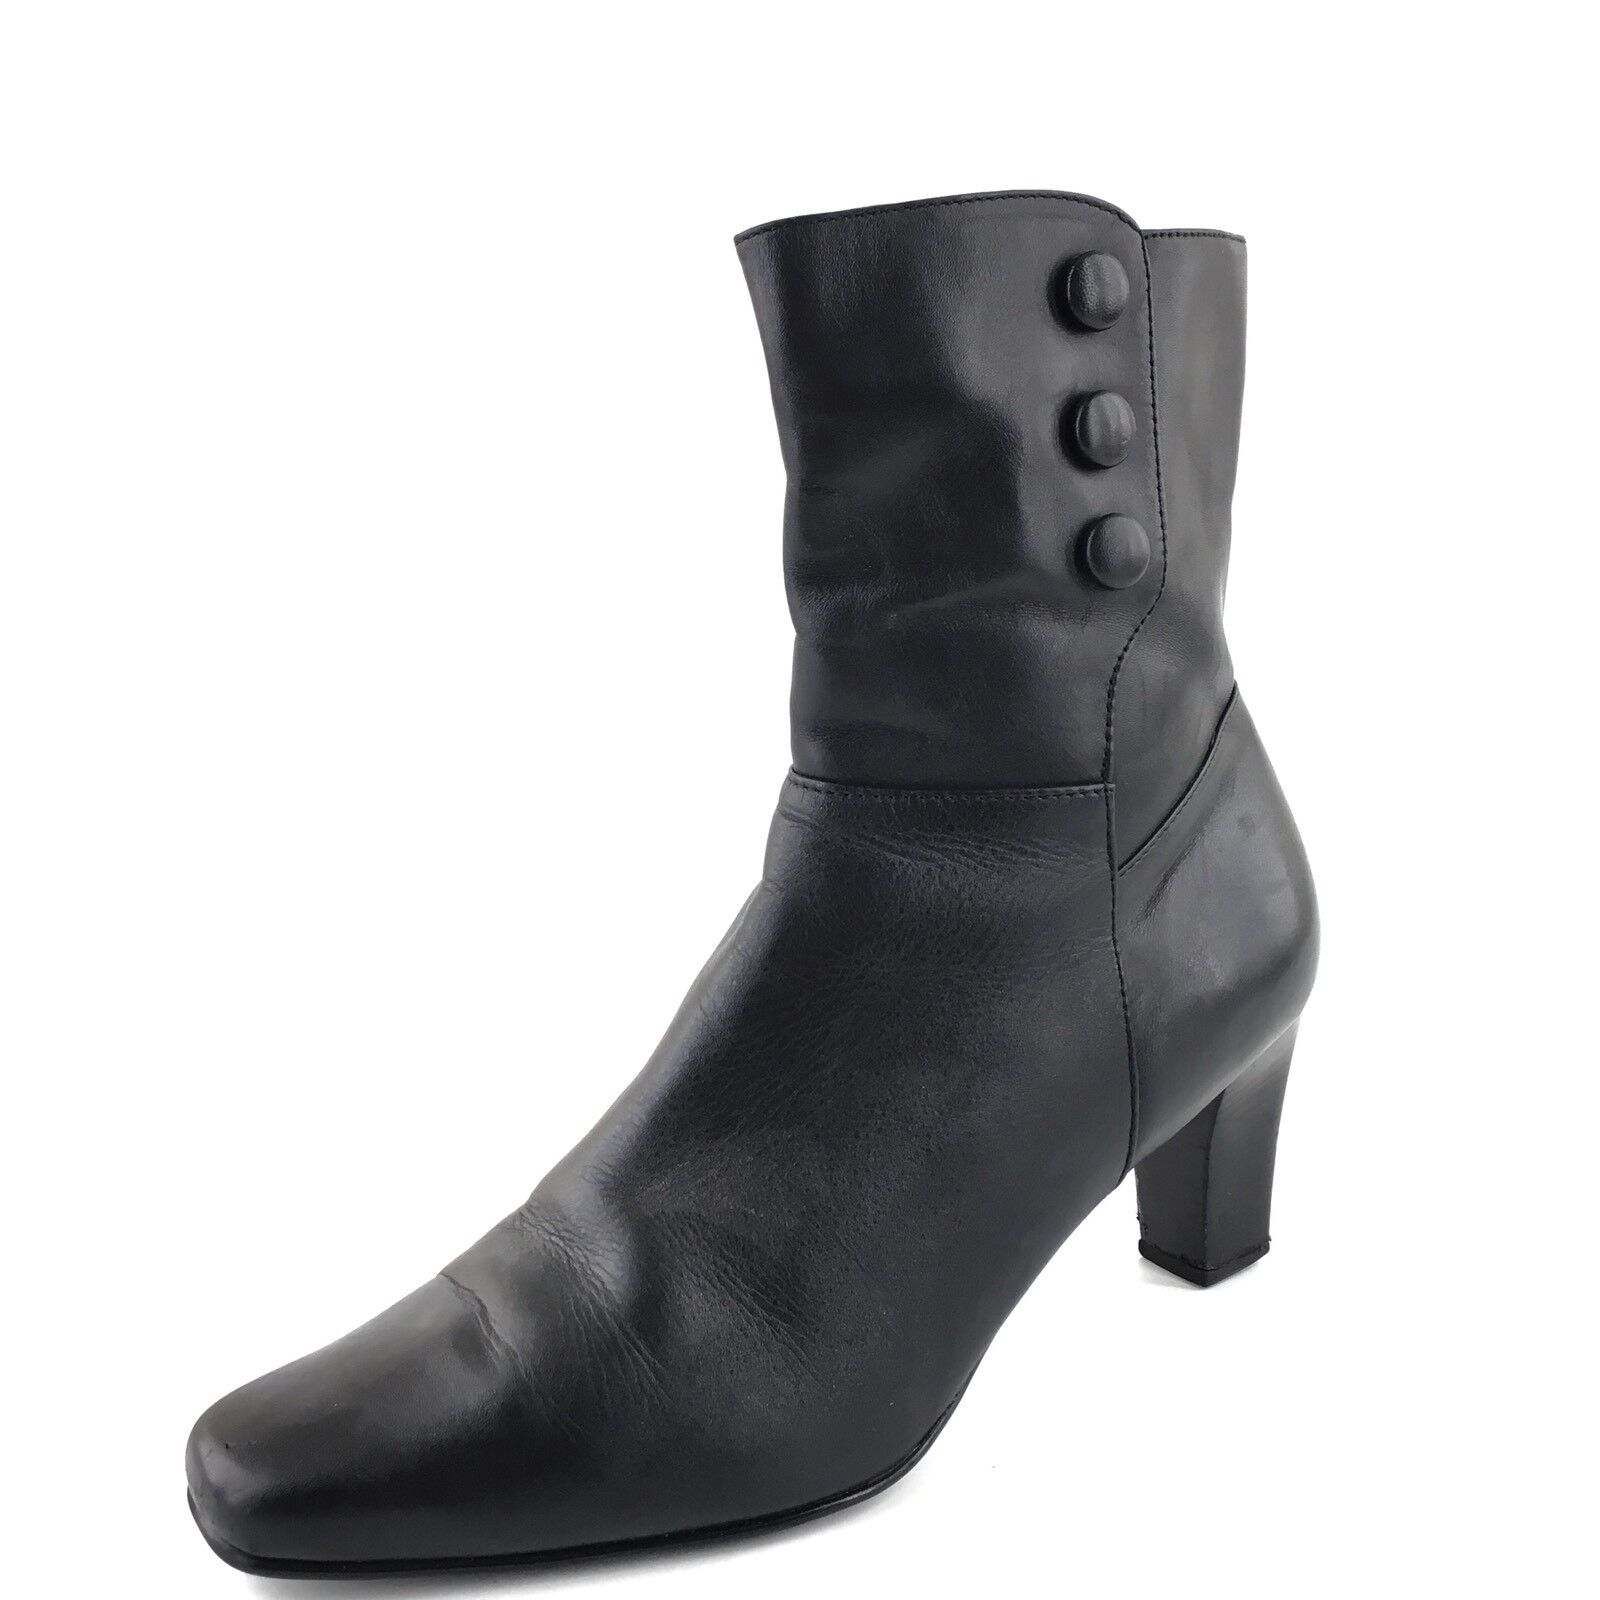 Blondo Chicago Black Leather Waterproof Ankle Boots Women's Size 9.5 M*